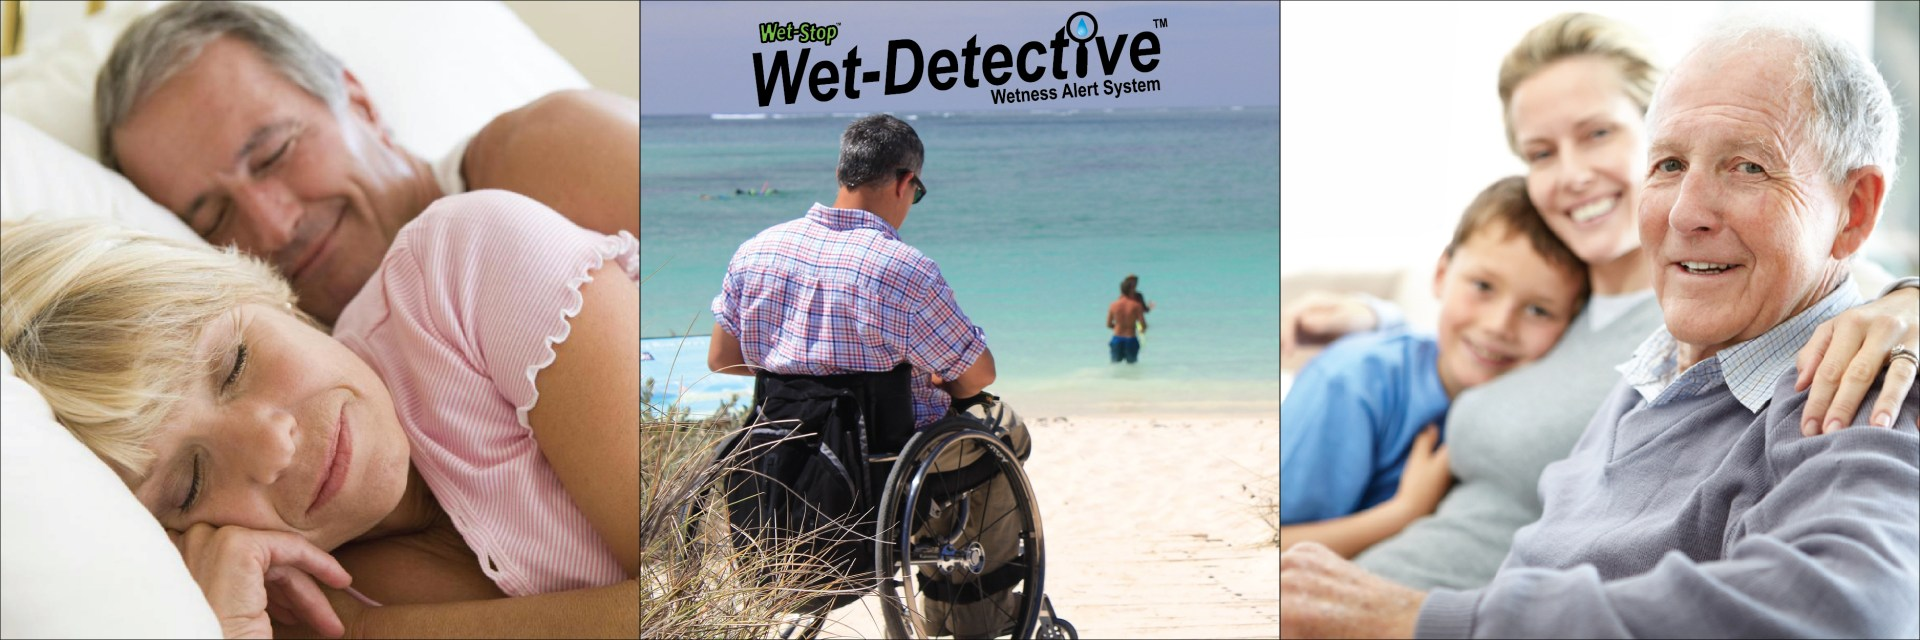 Wet-Detective Pad Alarm System for urinary incontinence helps adults, special needs people, and caregivers with alerts.